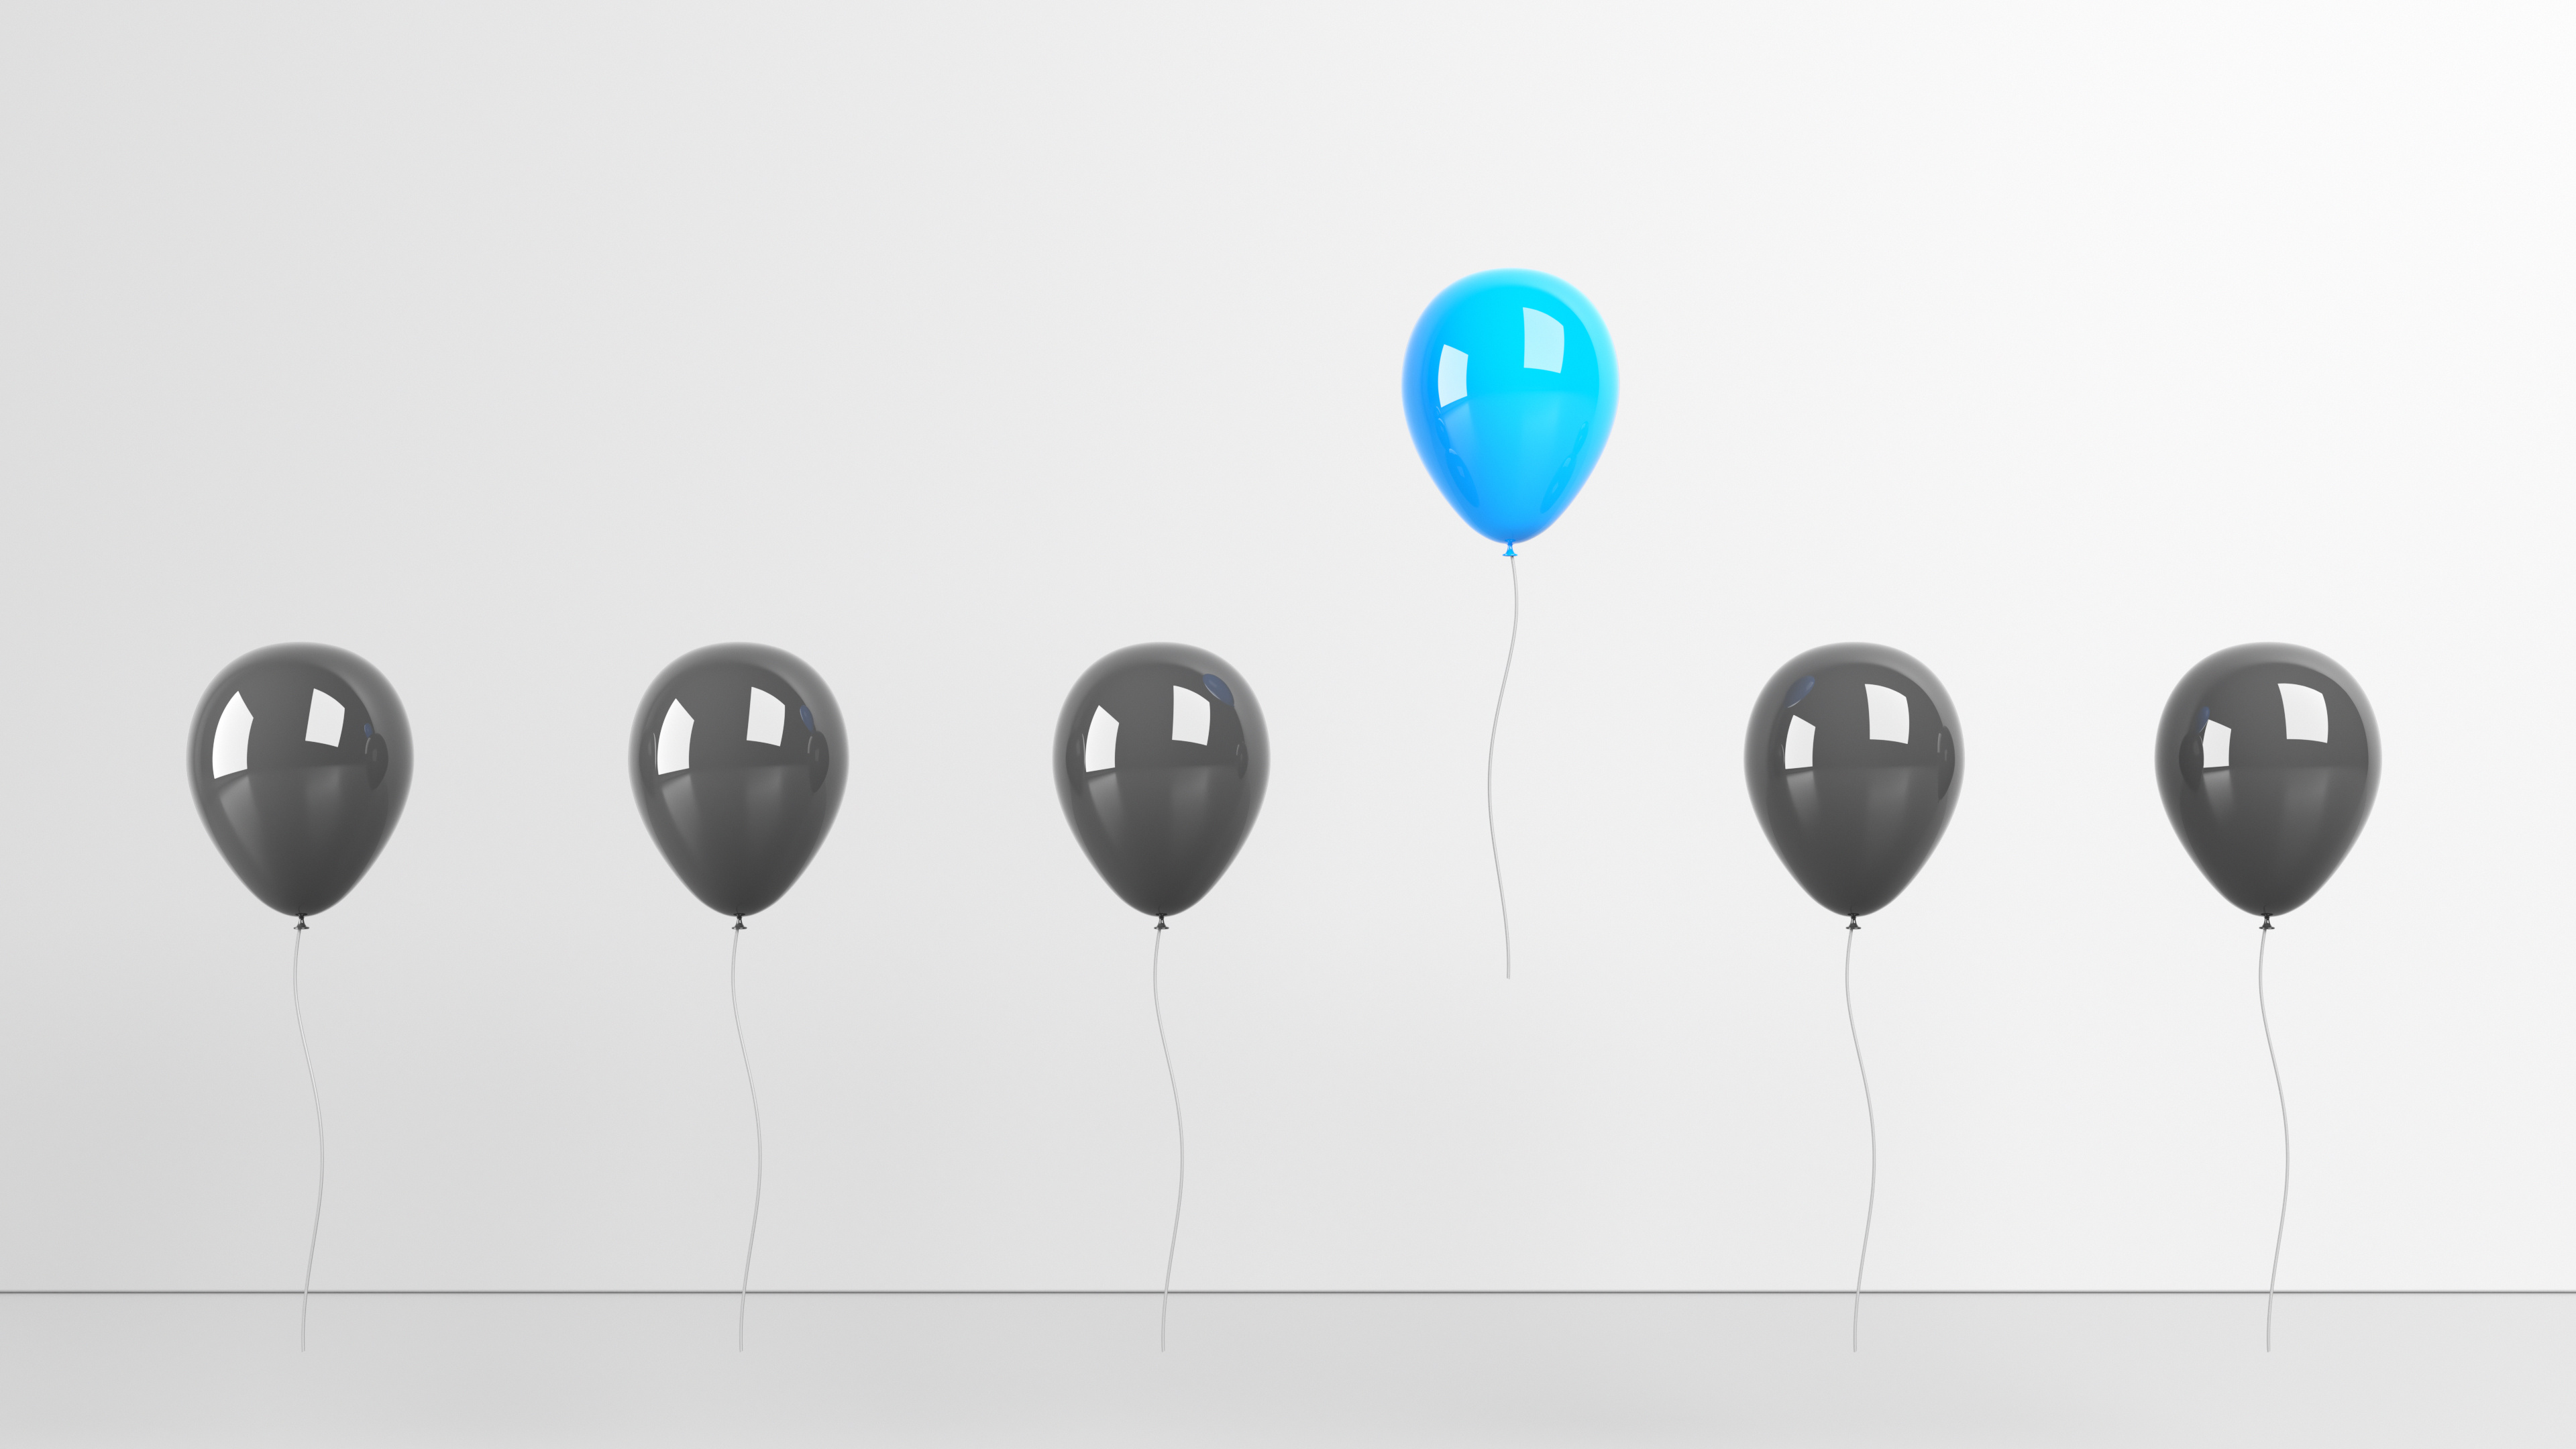 Solo blue balloon stands out from the other black balloons